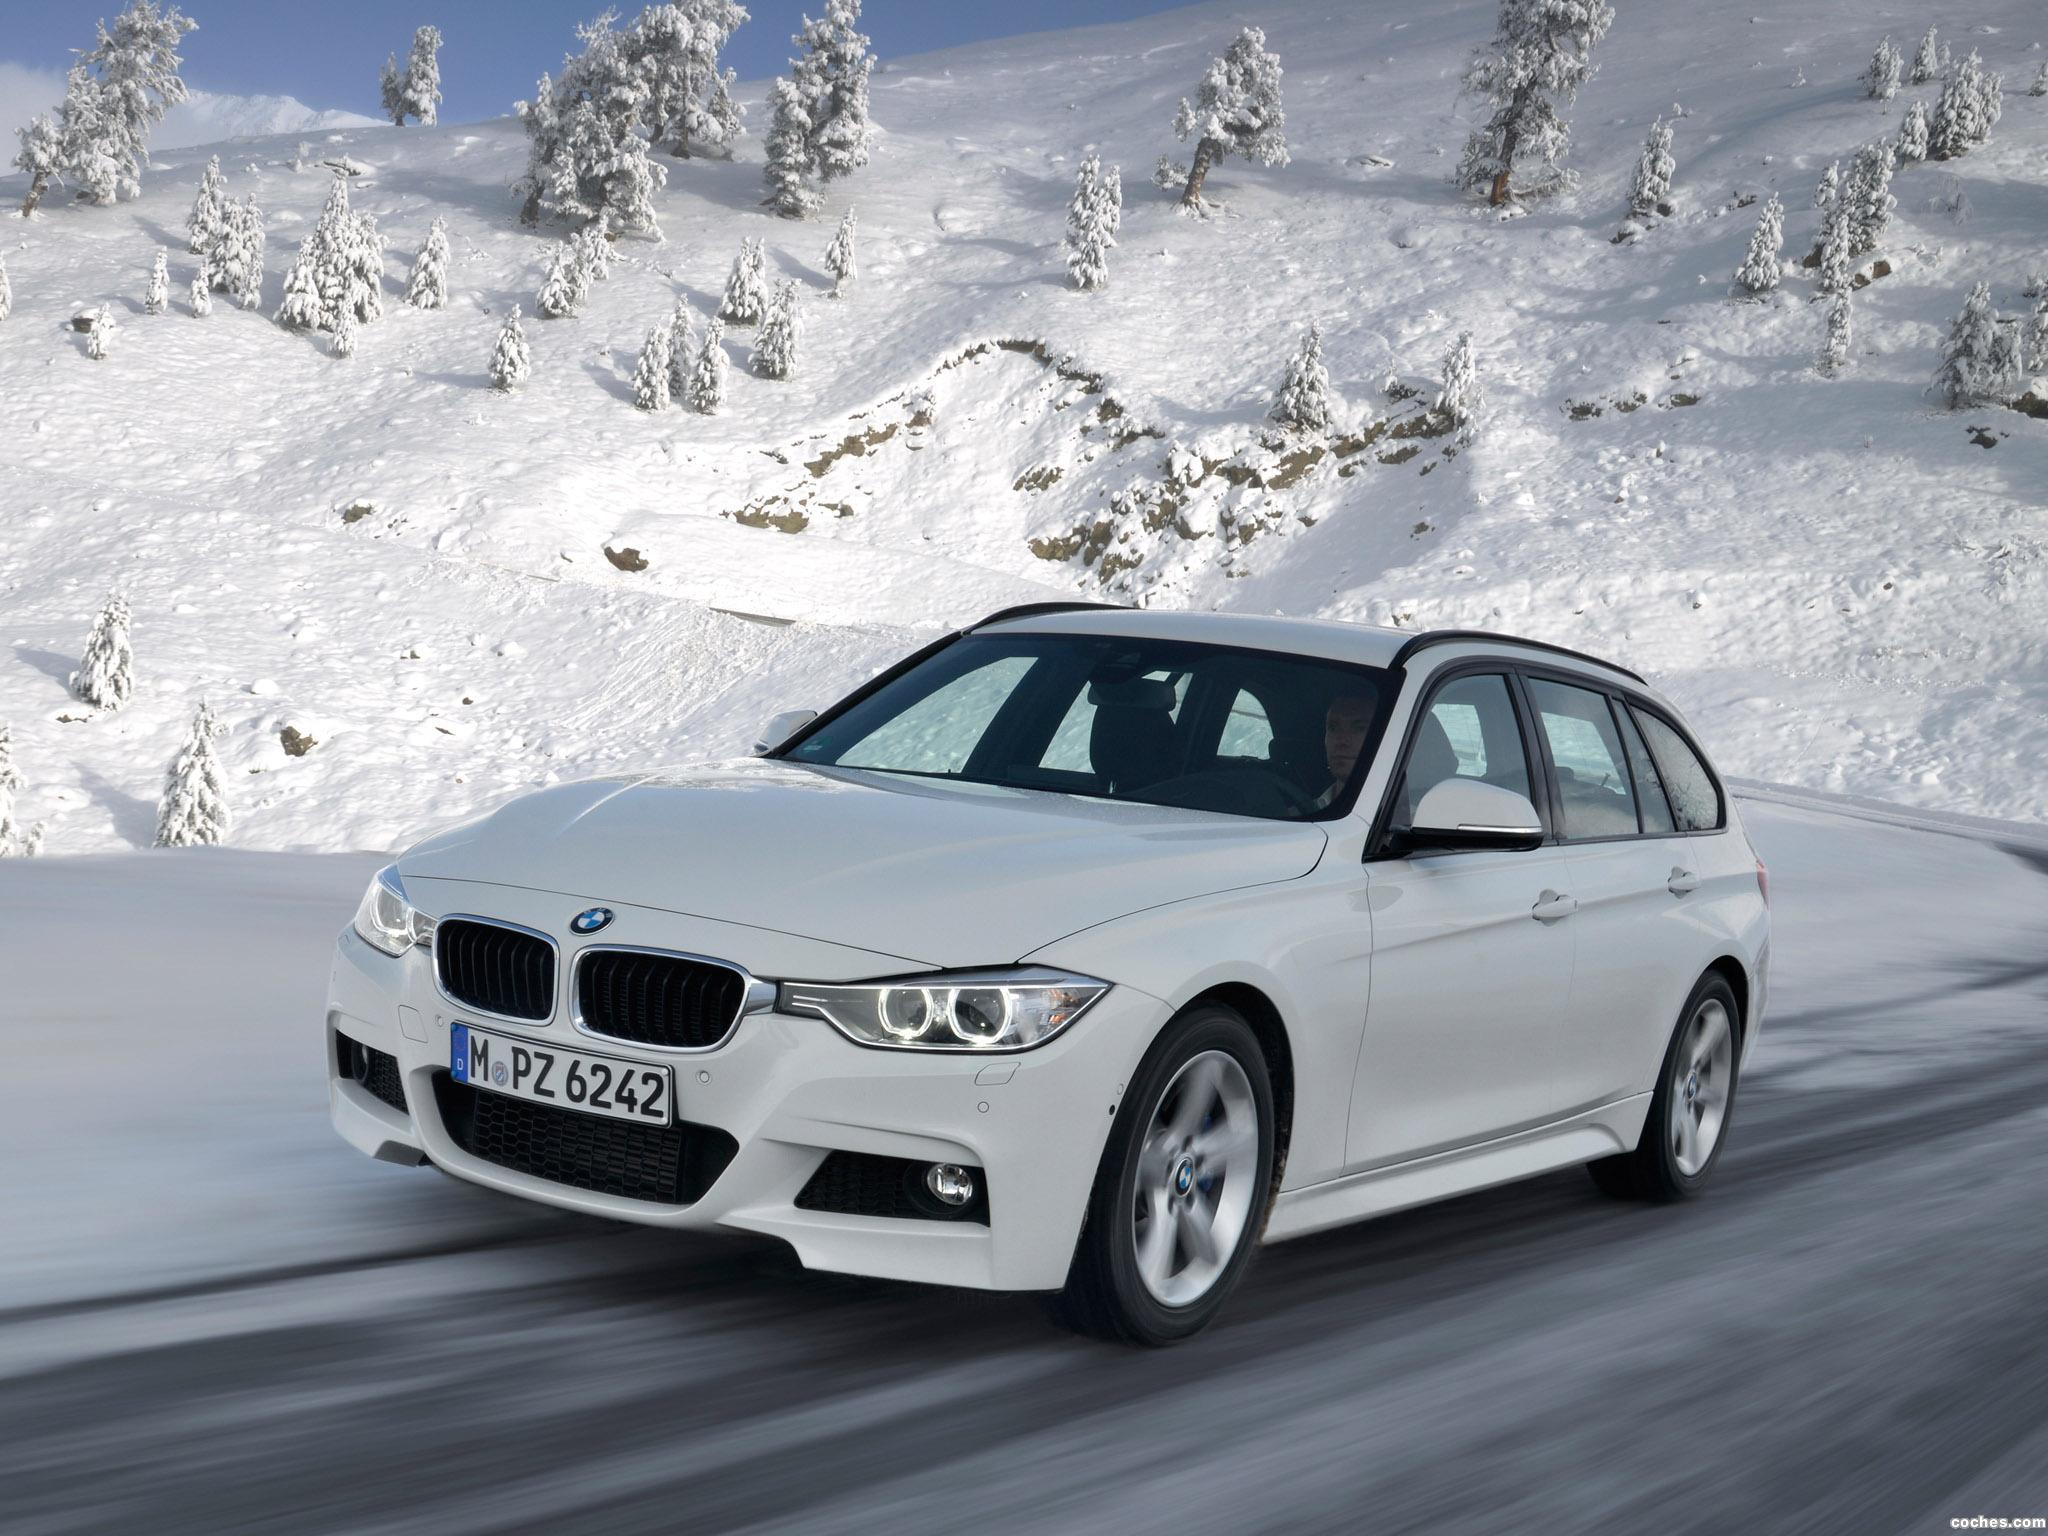 Foto 2 de BMW Serie 3 320d xDrive Touring M Sports Package F31 2013